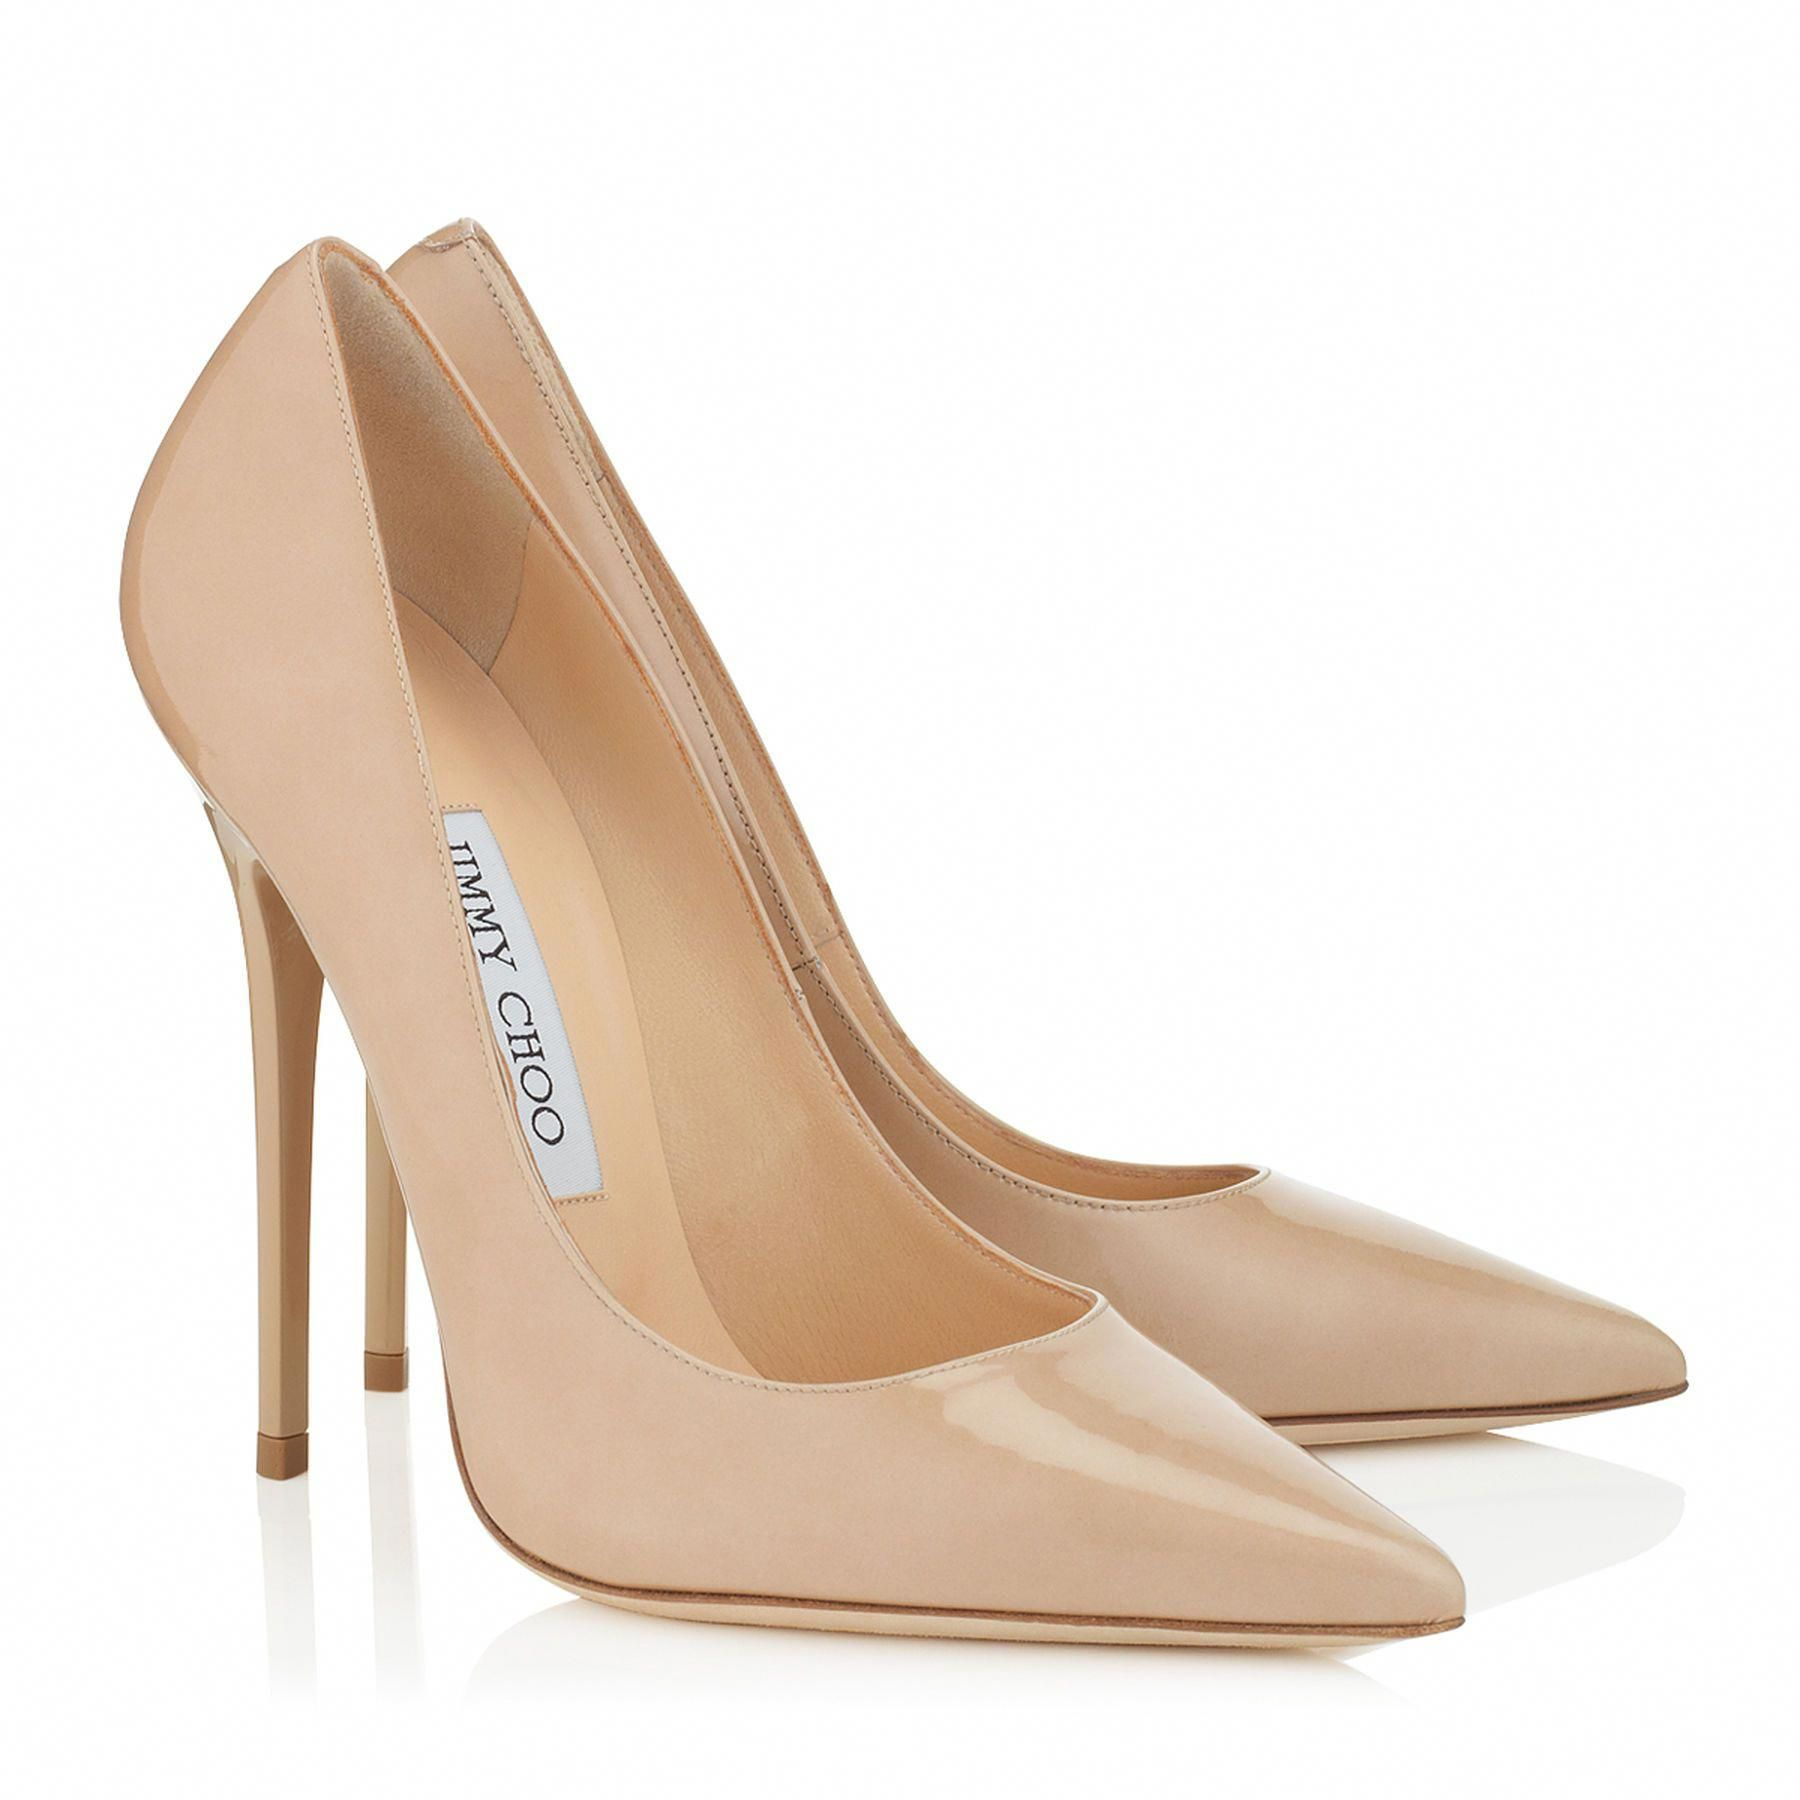 Jimmy choo Nude Suede esme 85 Stiletto Pumps in Natural